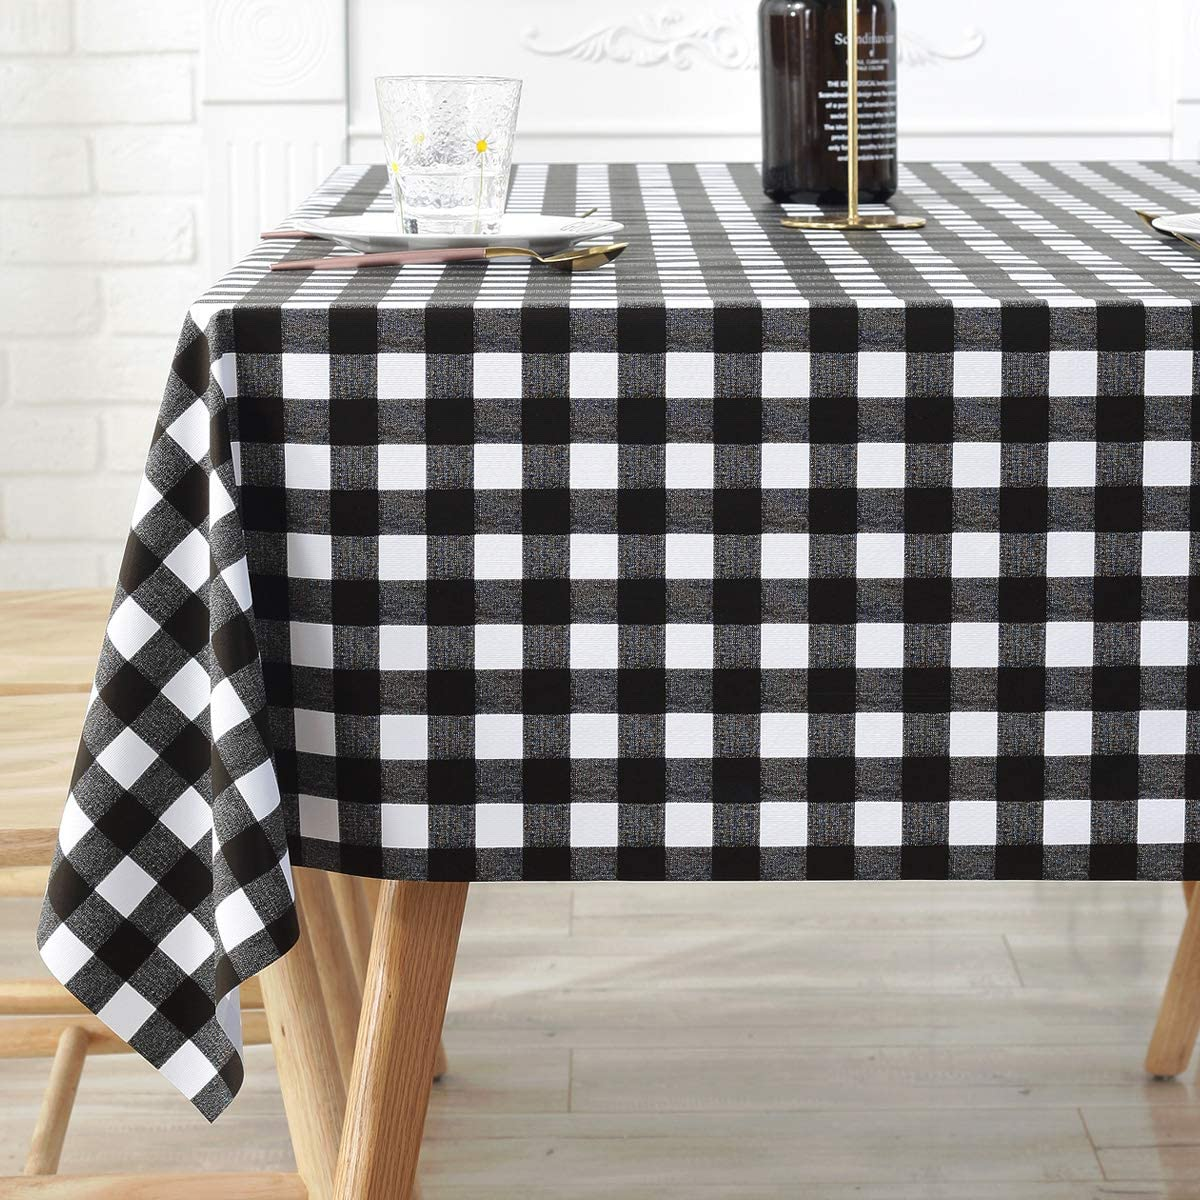 LOHASCASA Plastic Tablecloth Oilcloth Picnic PVC Wipeable Vinyl Spillproof Peva Waterproof Oil Proof Heavy Duty Rectangle Fall Tablecloths for Dining Room Black and White Gingam 54x78 Inch